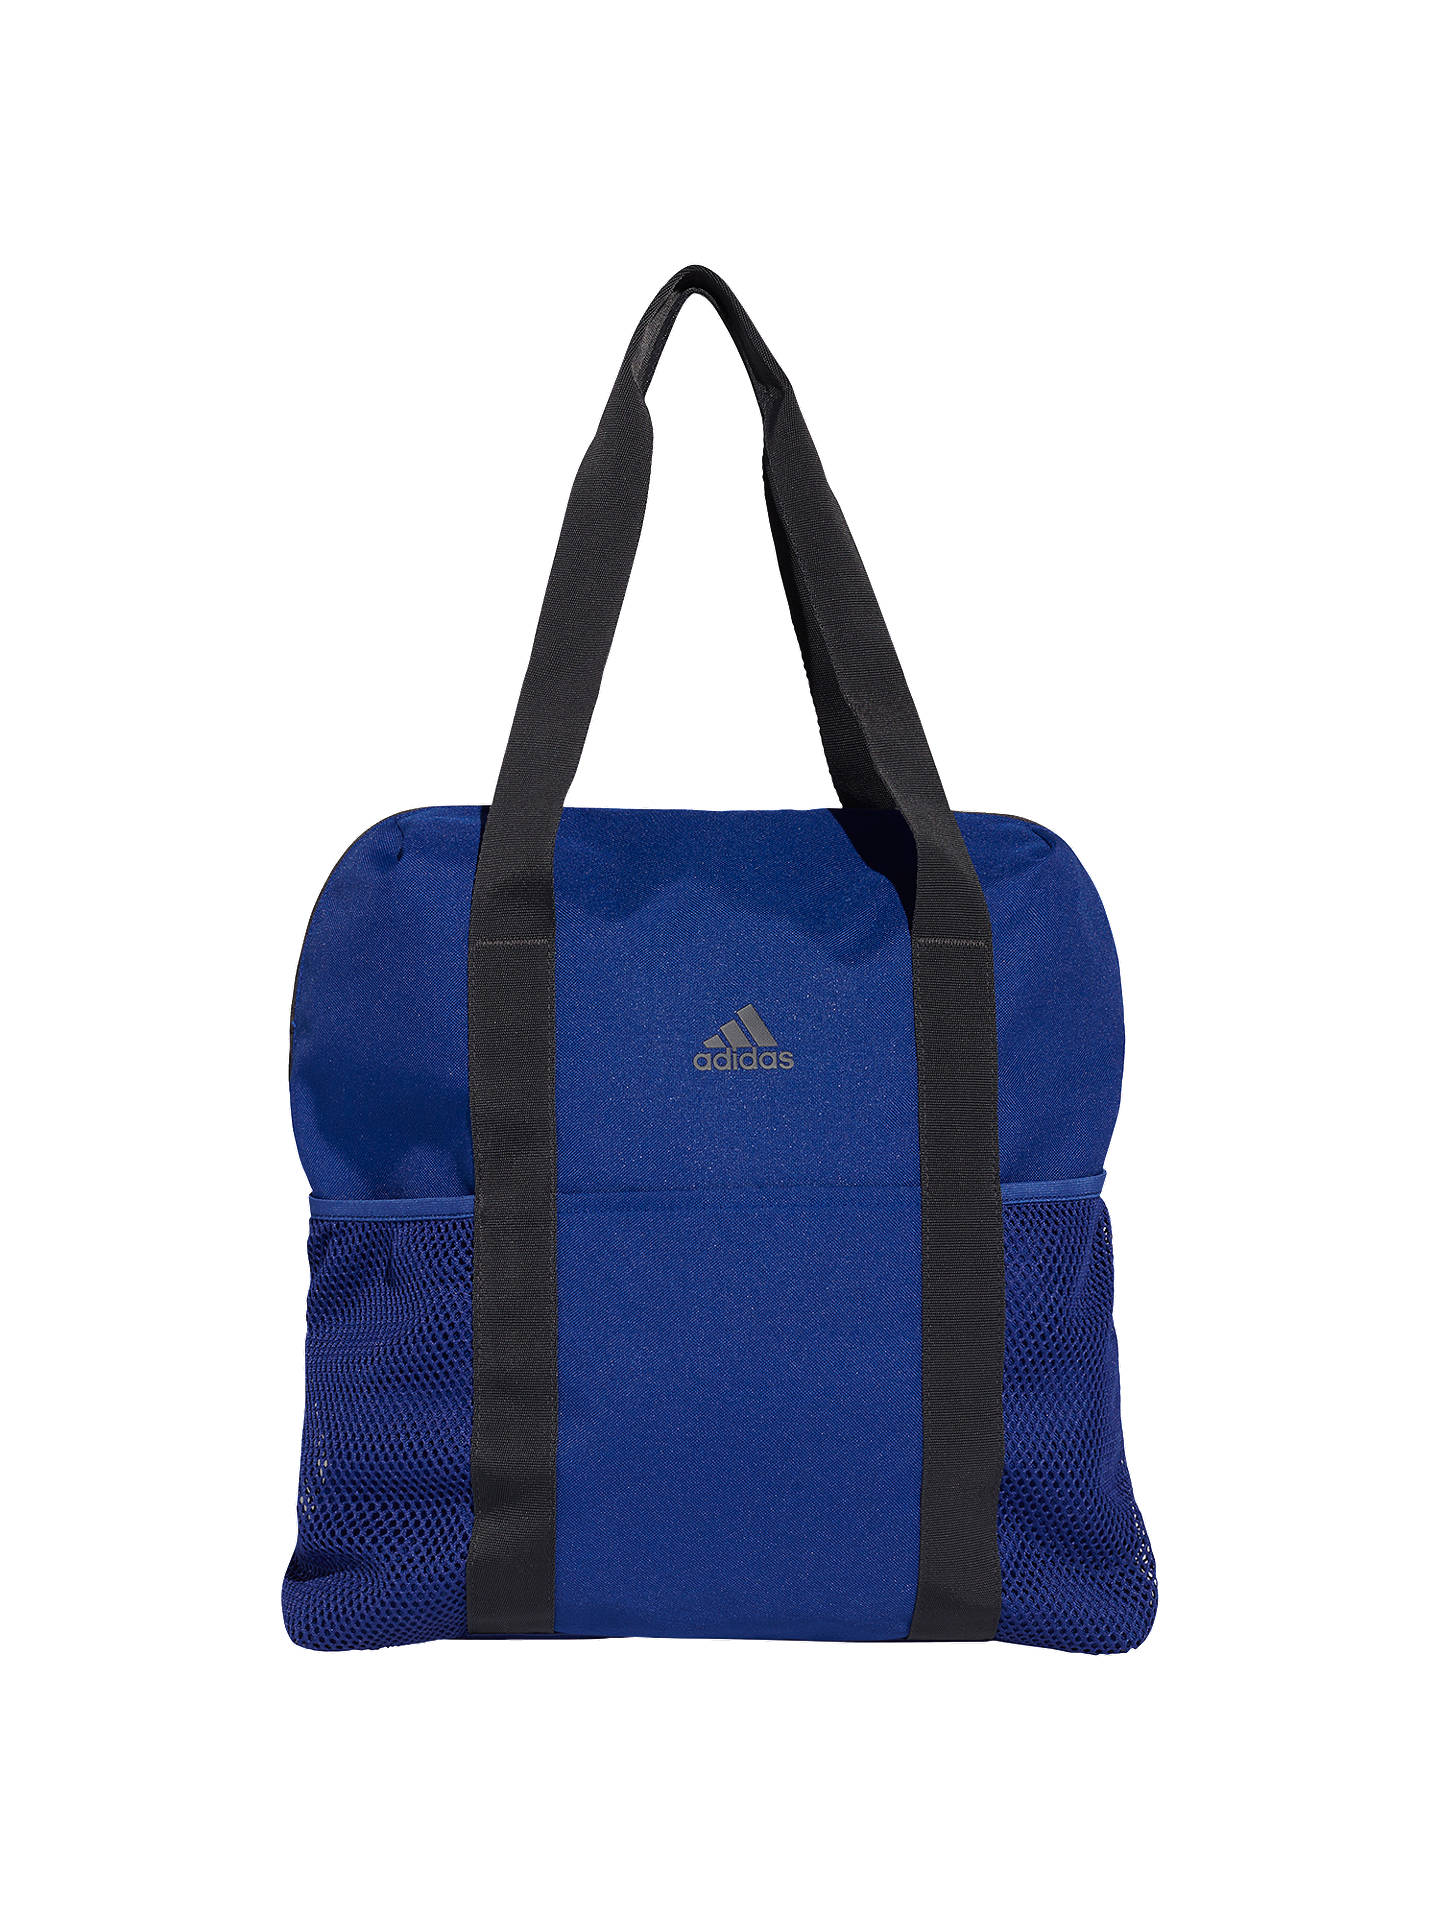 efe13a29819 Buy adidas Training Tote Bag, Mystery Ink Online at johnlewis.com ...